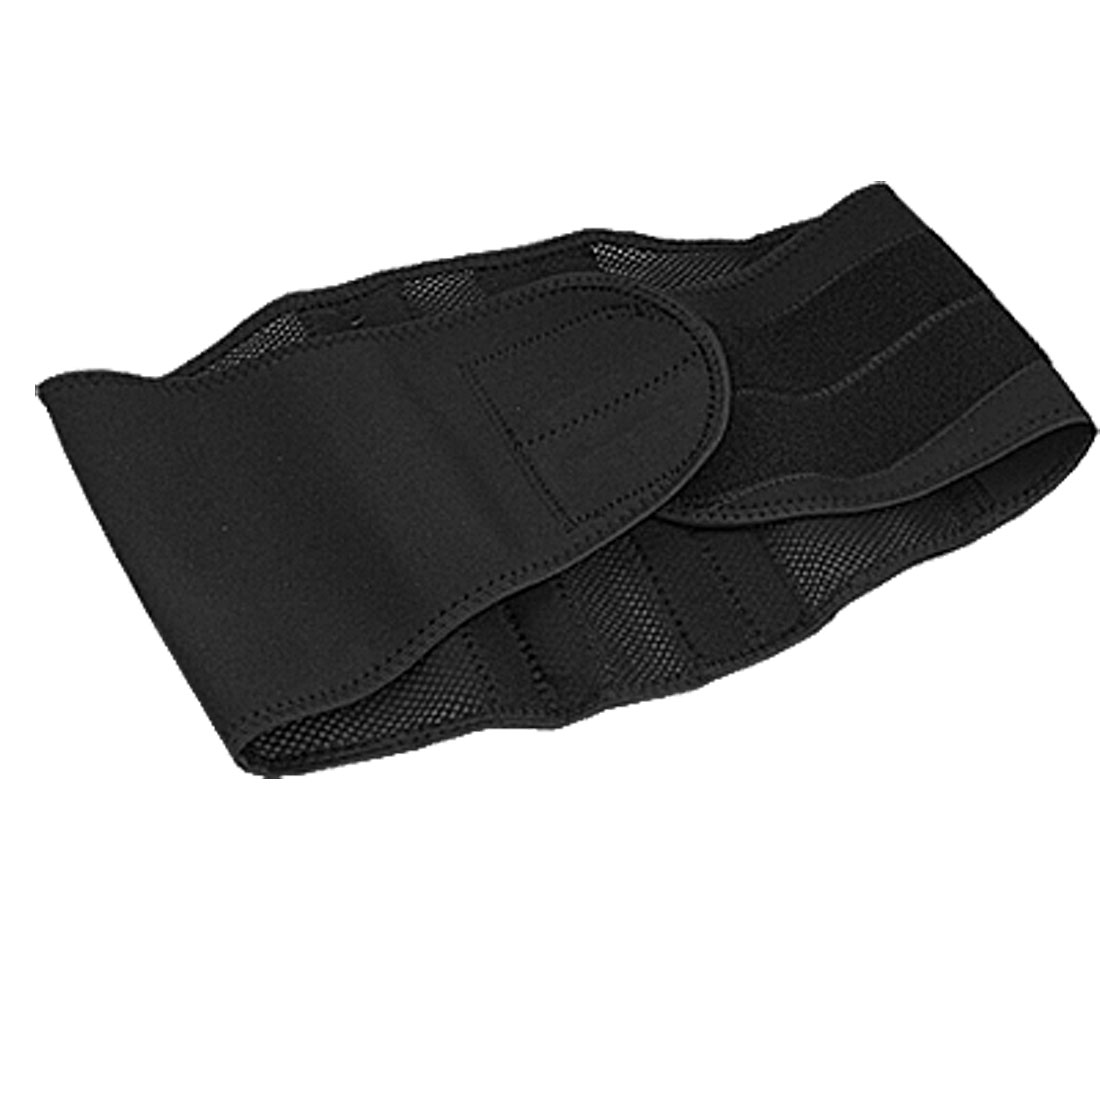 Black Neoprene Breathable Fixing Band Waist Support